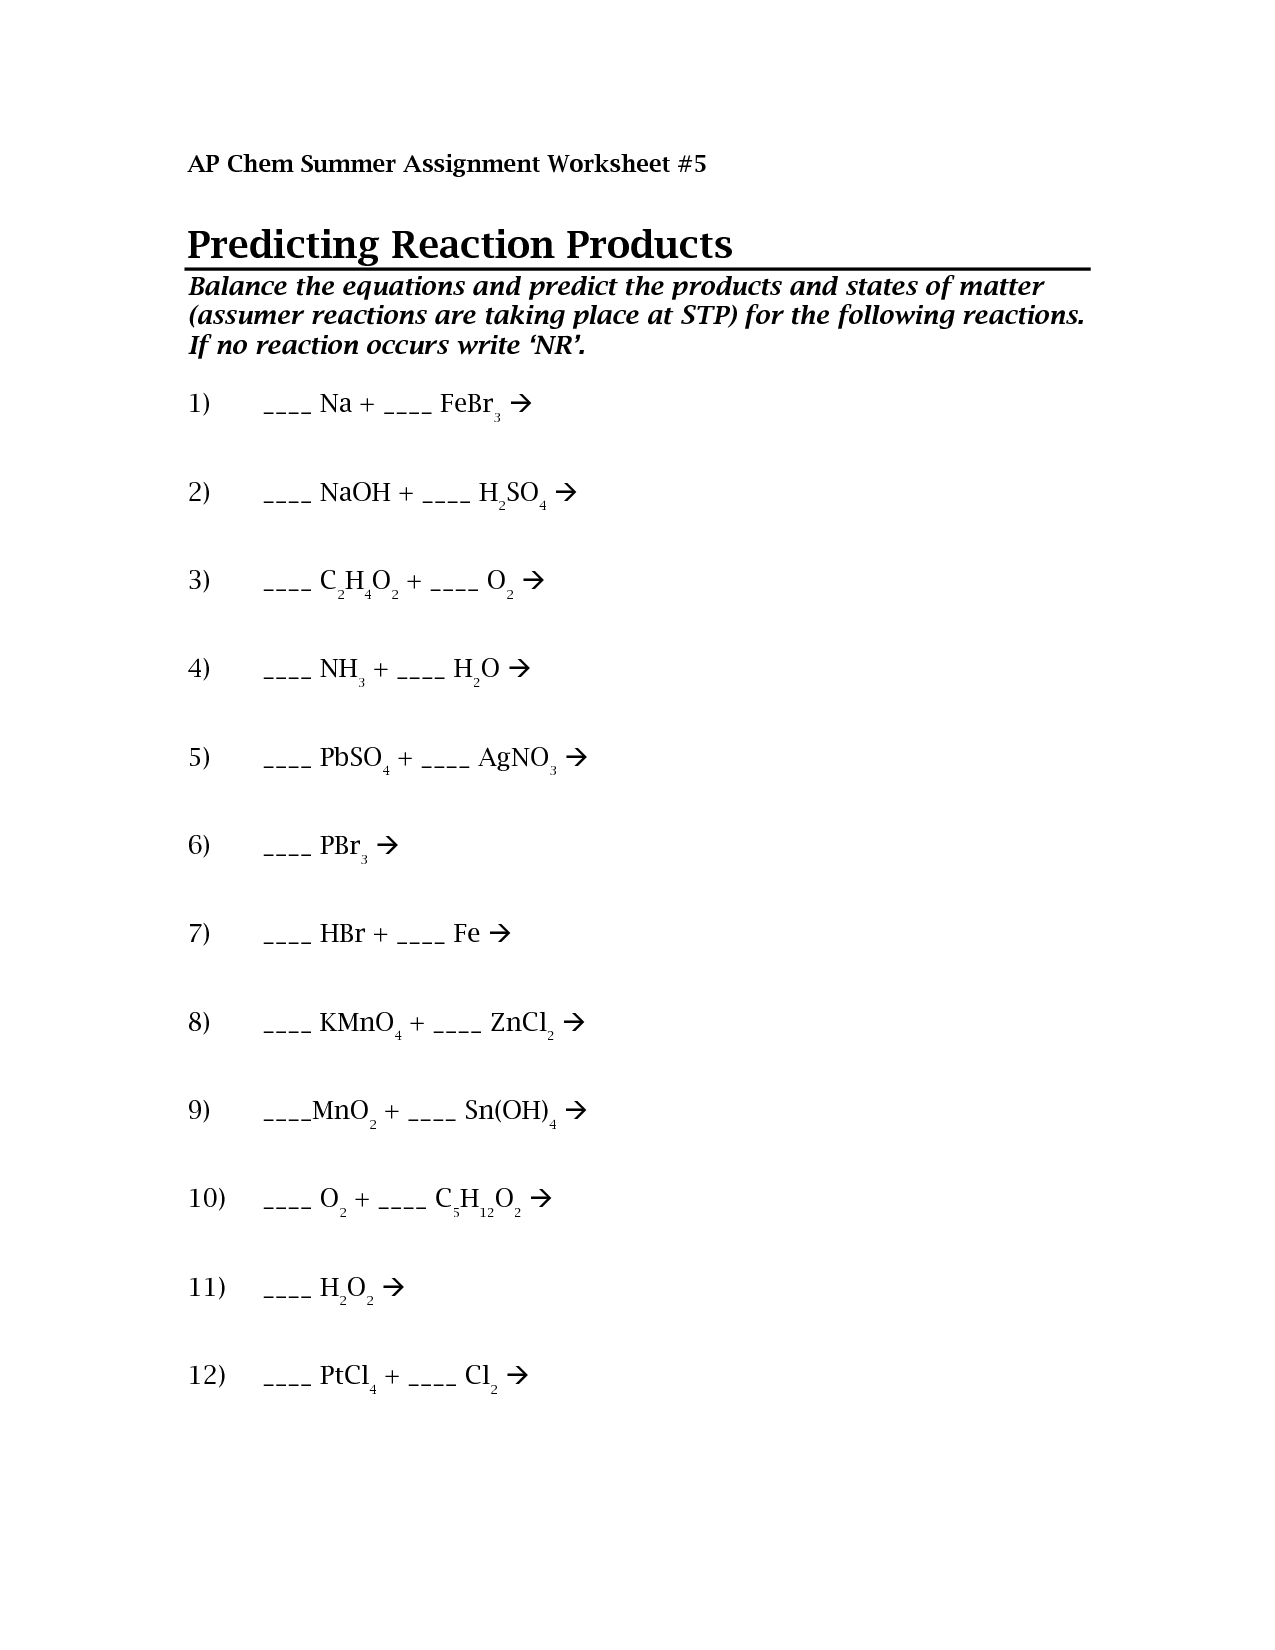 28 Predicting Products Worksheet Answers